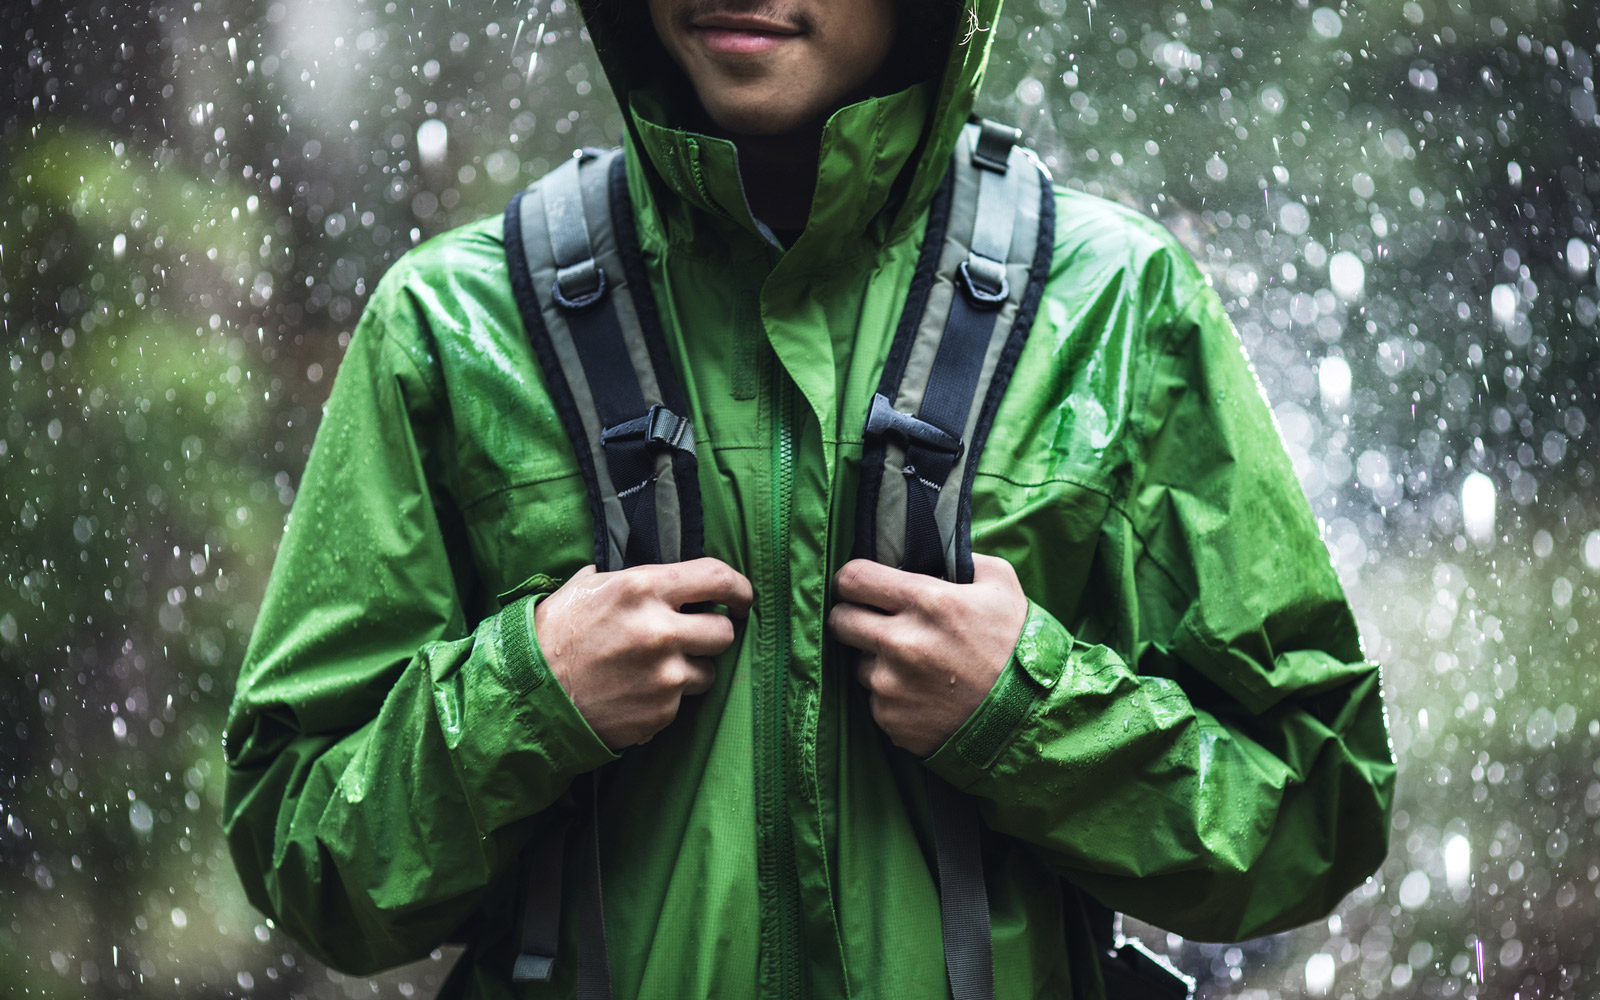 how to waterproof travel gear shoes backpacks